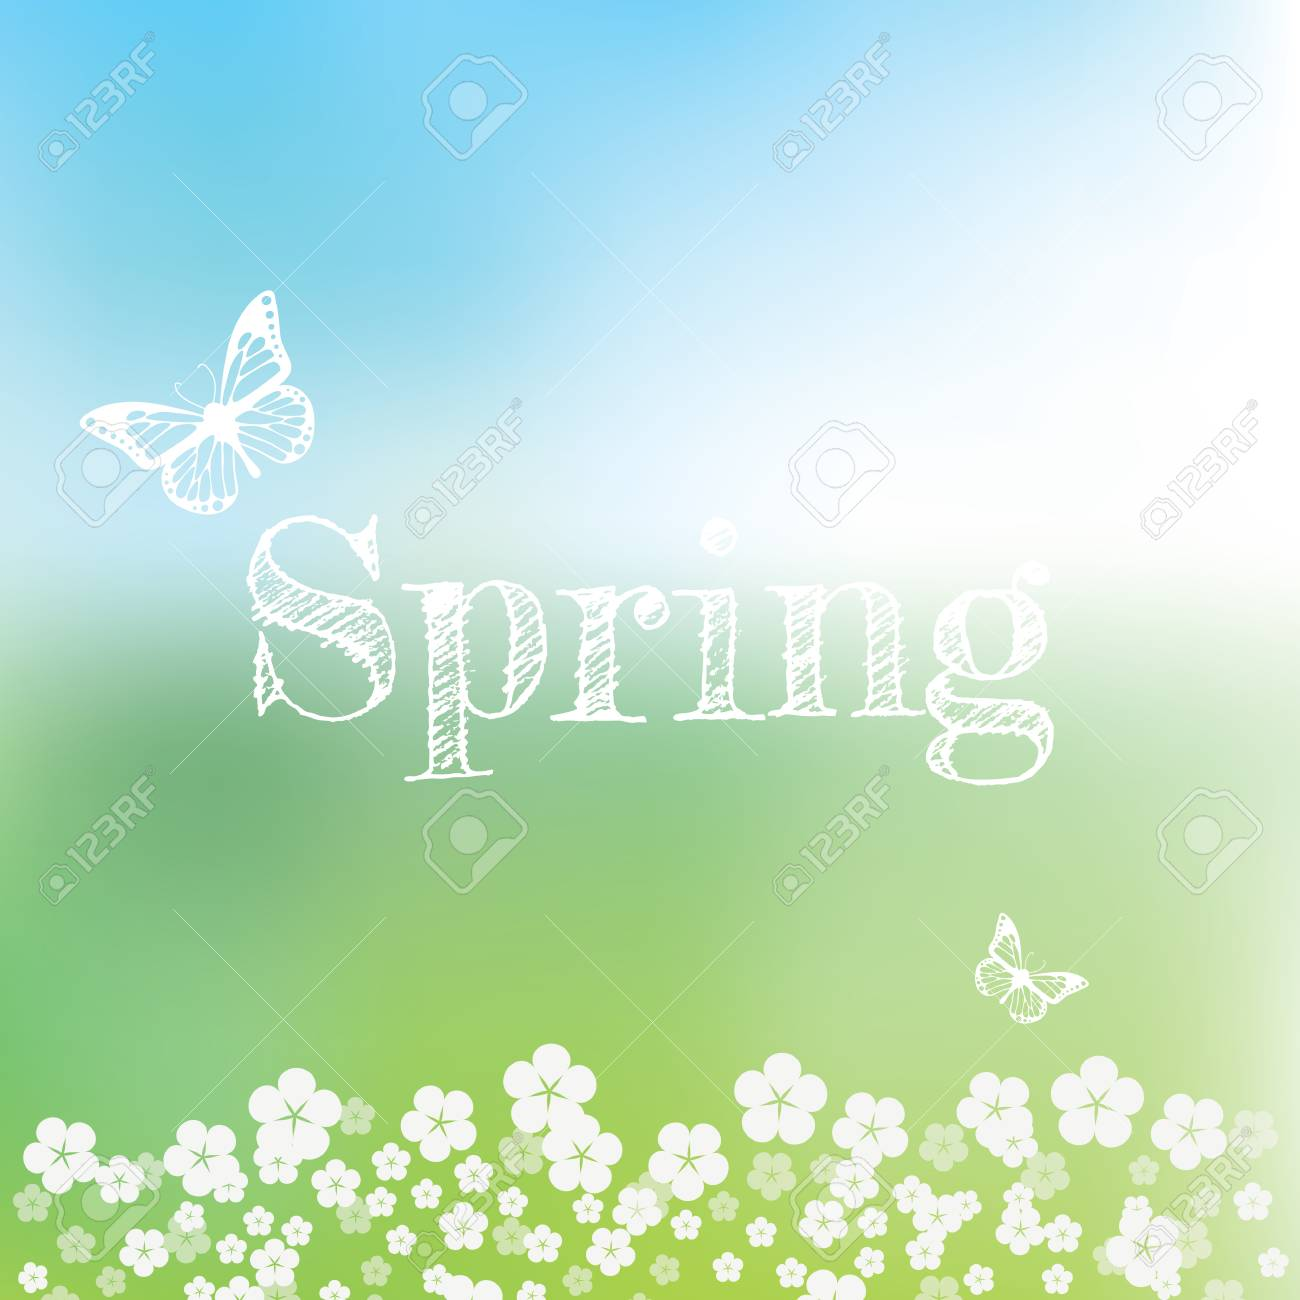 Spring Vector Wallpaper With Bokeh Background And Handwritten